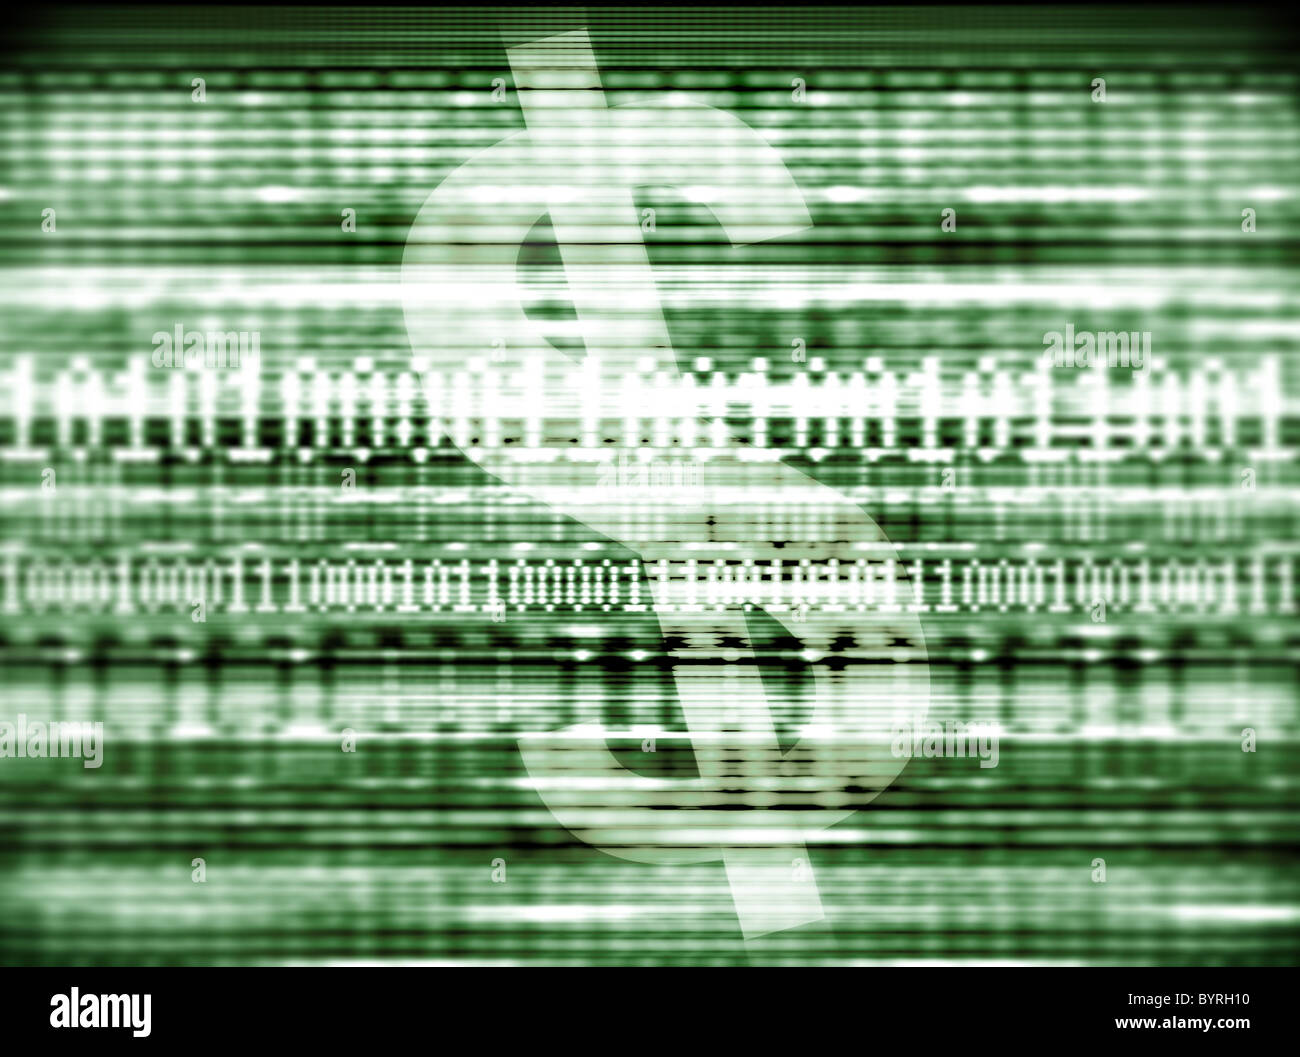 A dollar symbol and binary code or data streams representing online transactions and web security - Stock Image